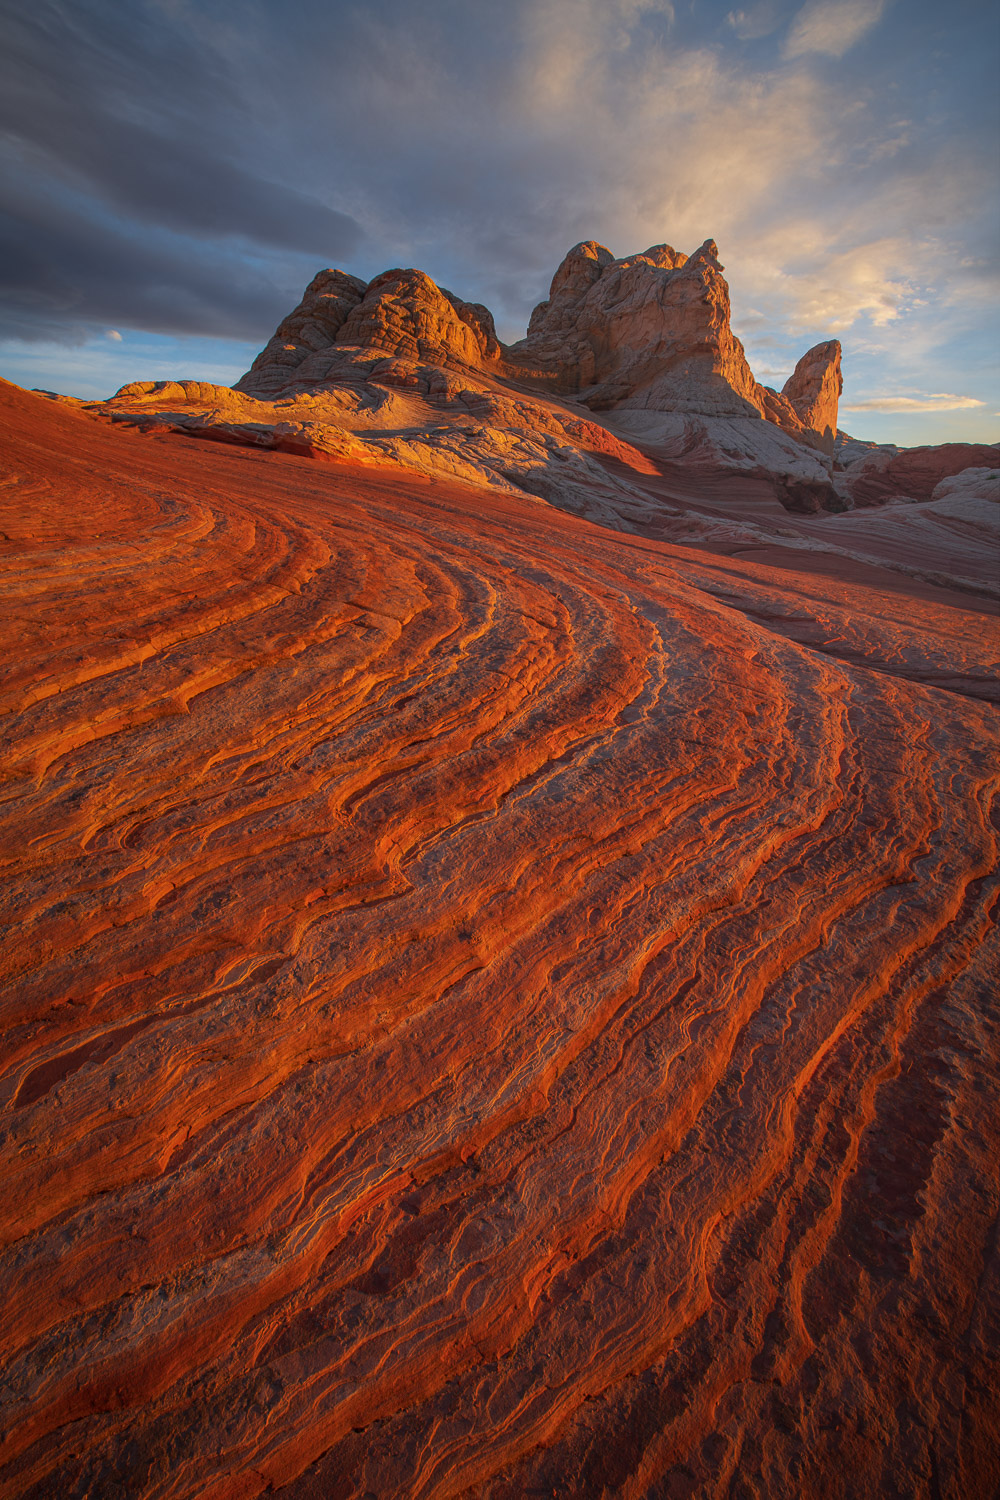 A beautiful summer sunset over the alien sandstone world of White Pocket, Arizona.